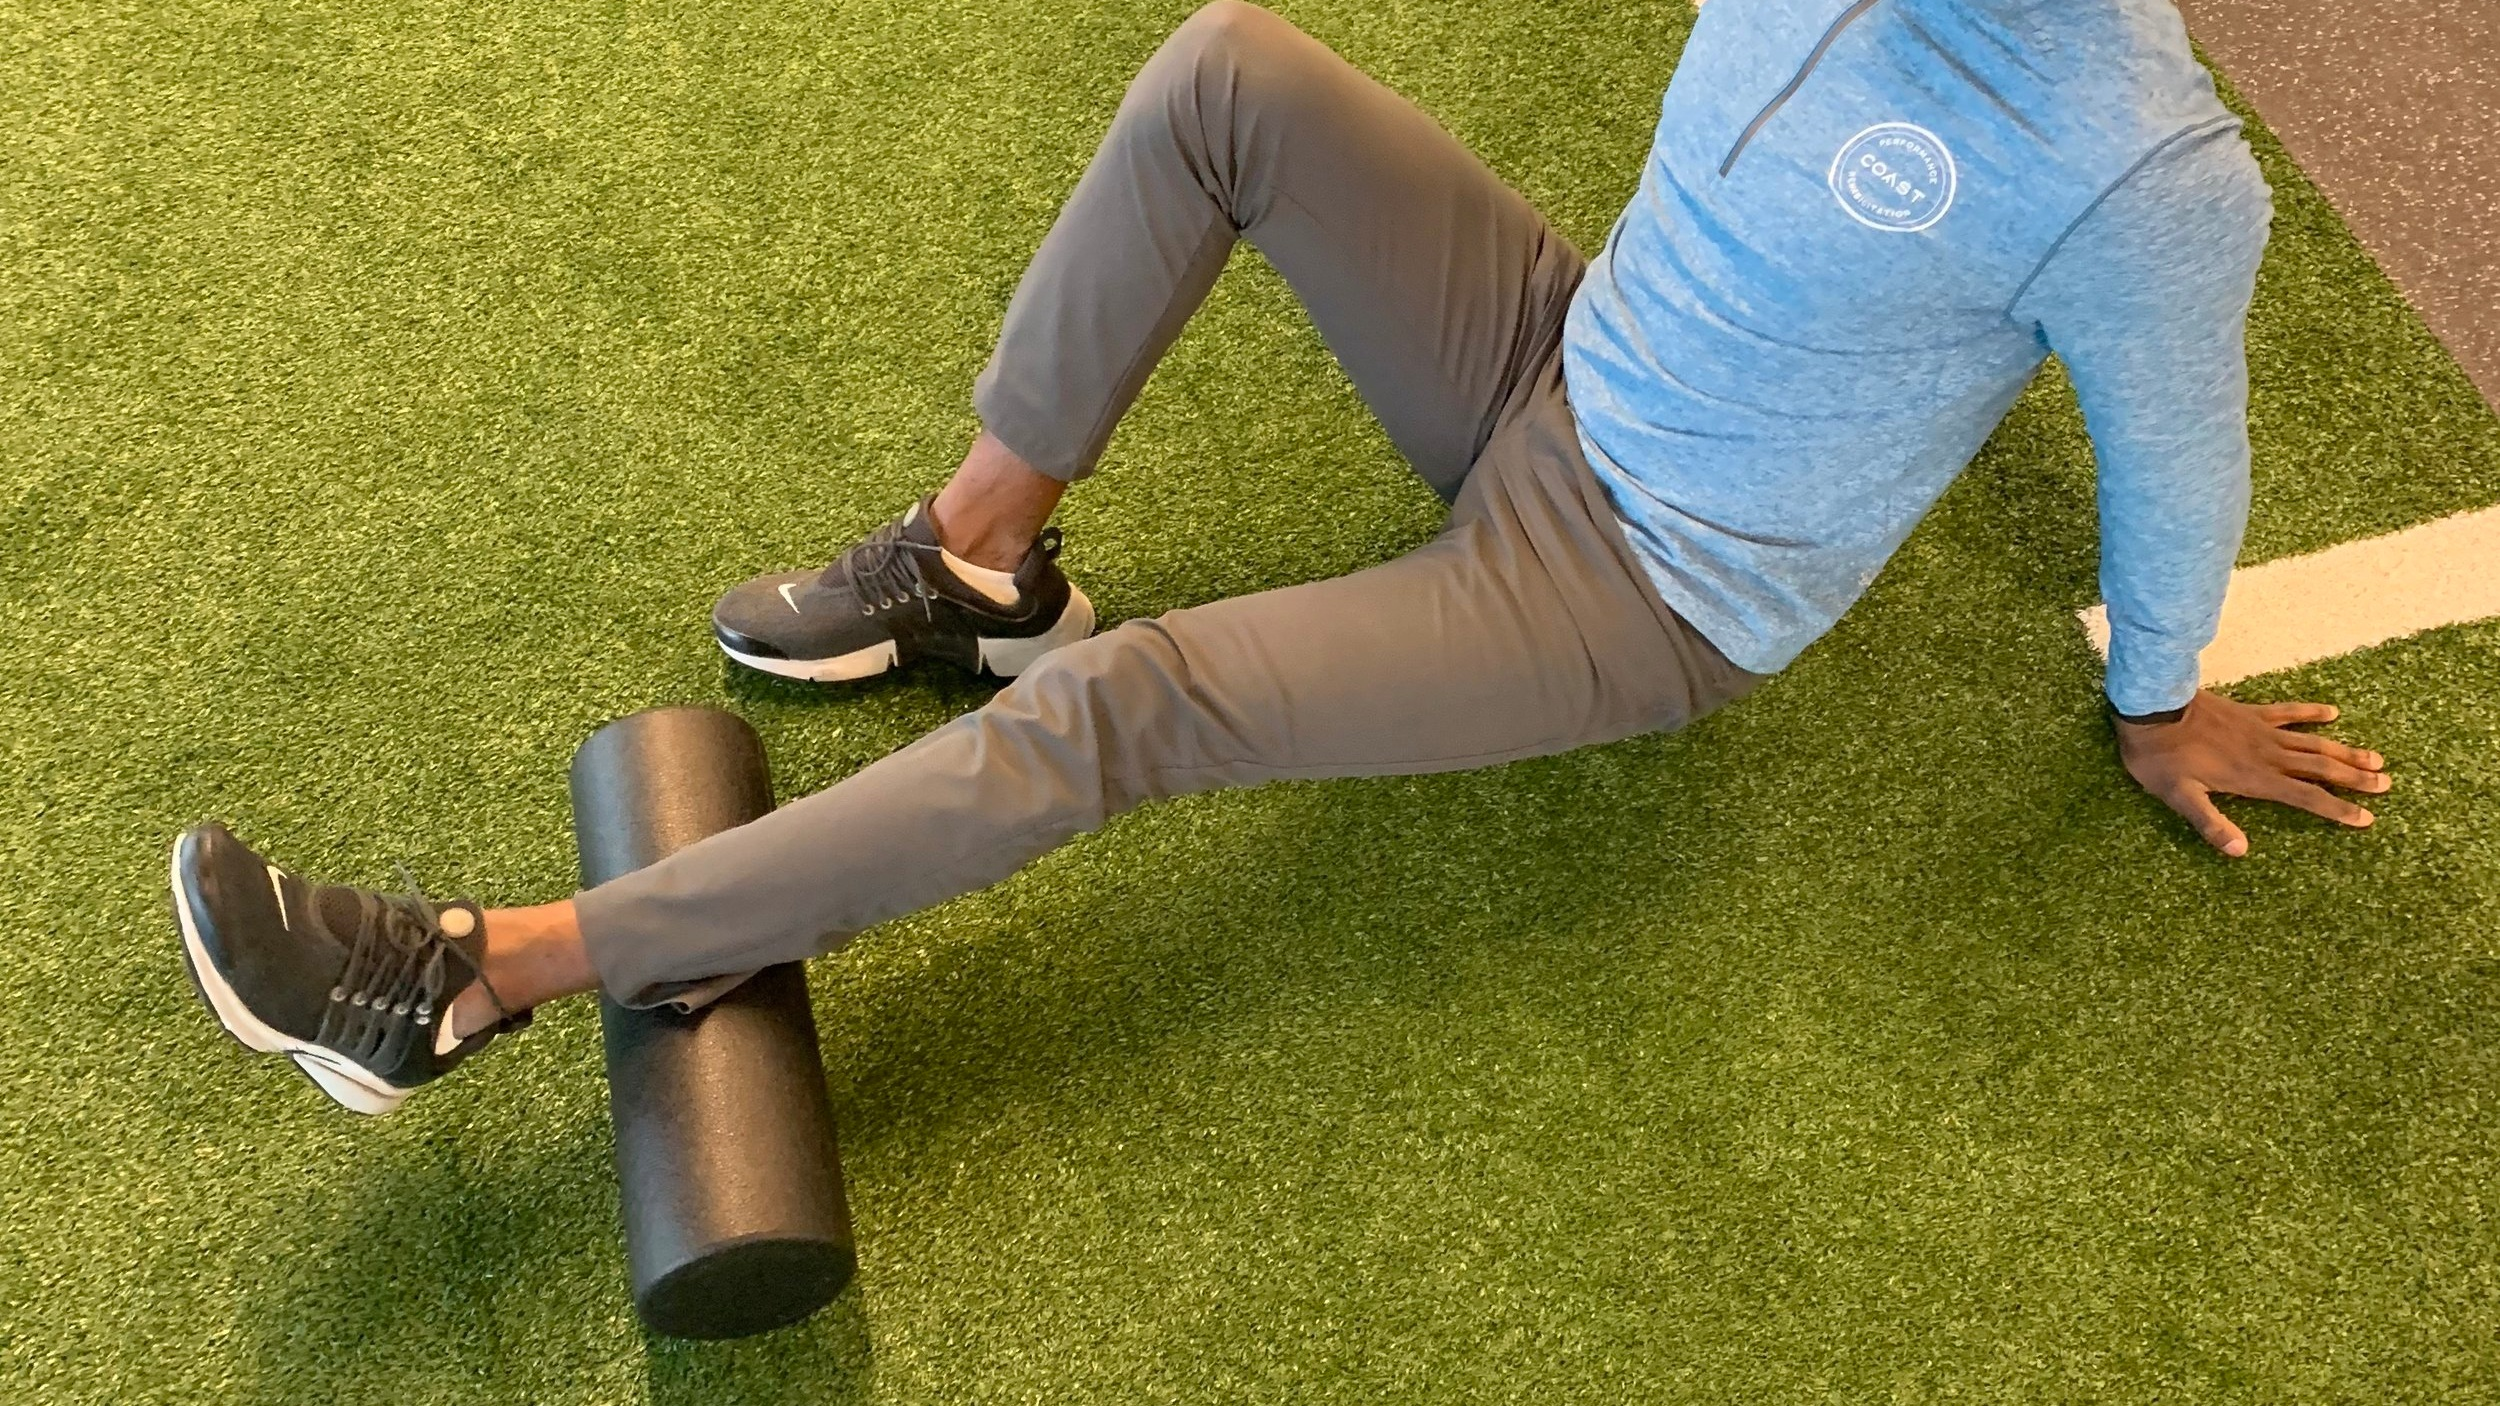 Advanced Workout That You Can Do With A Hurt Foot Or Ankle Injury ...